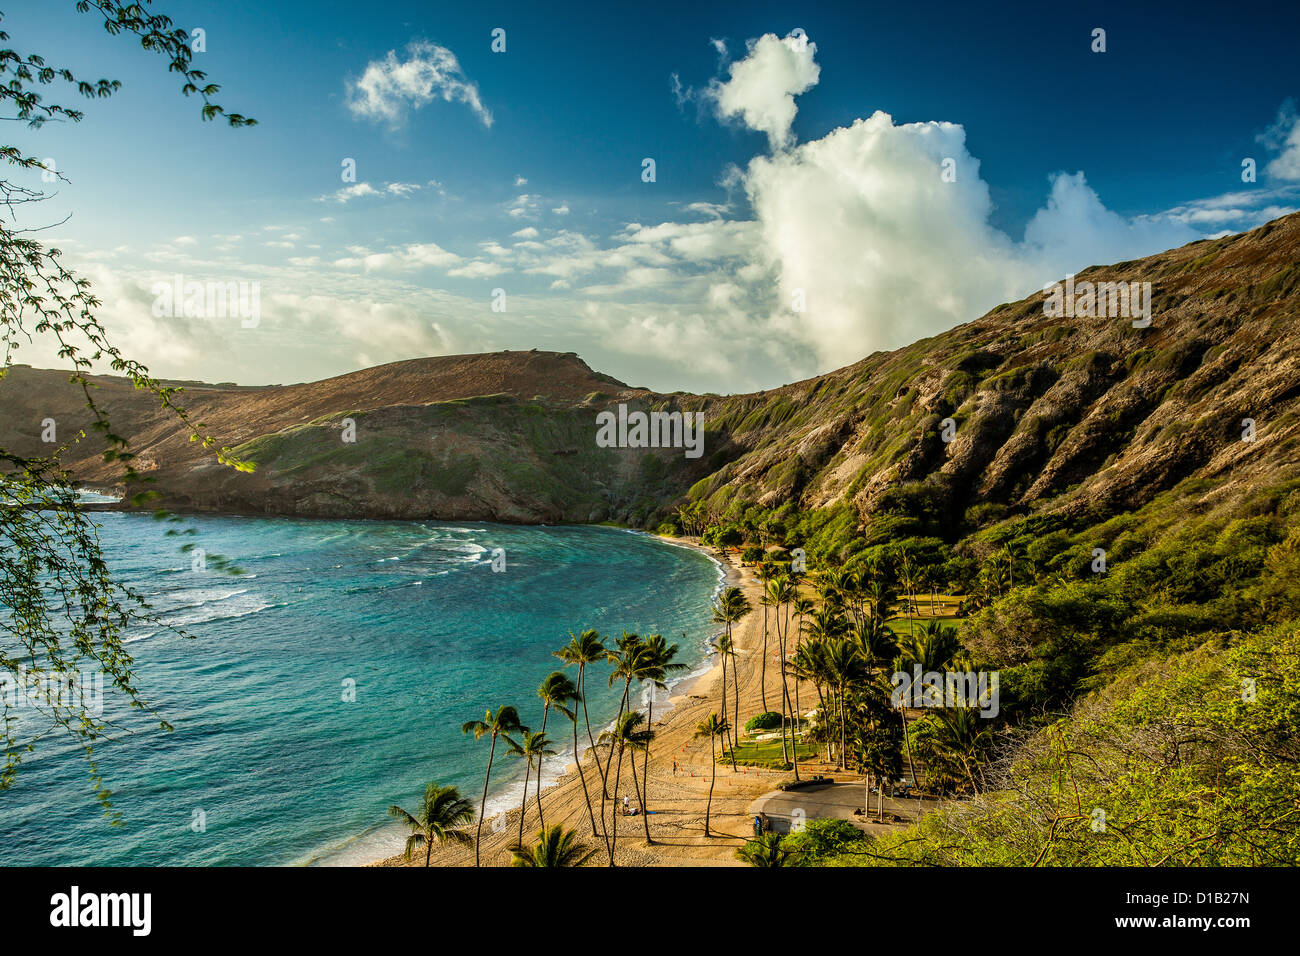 Hanauma Bay Hawaii Oahu Scenic Hawaiian Landscape Honolulu Ocean